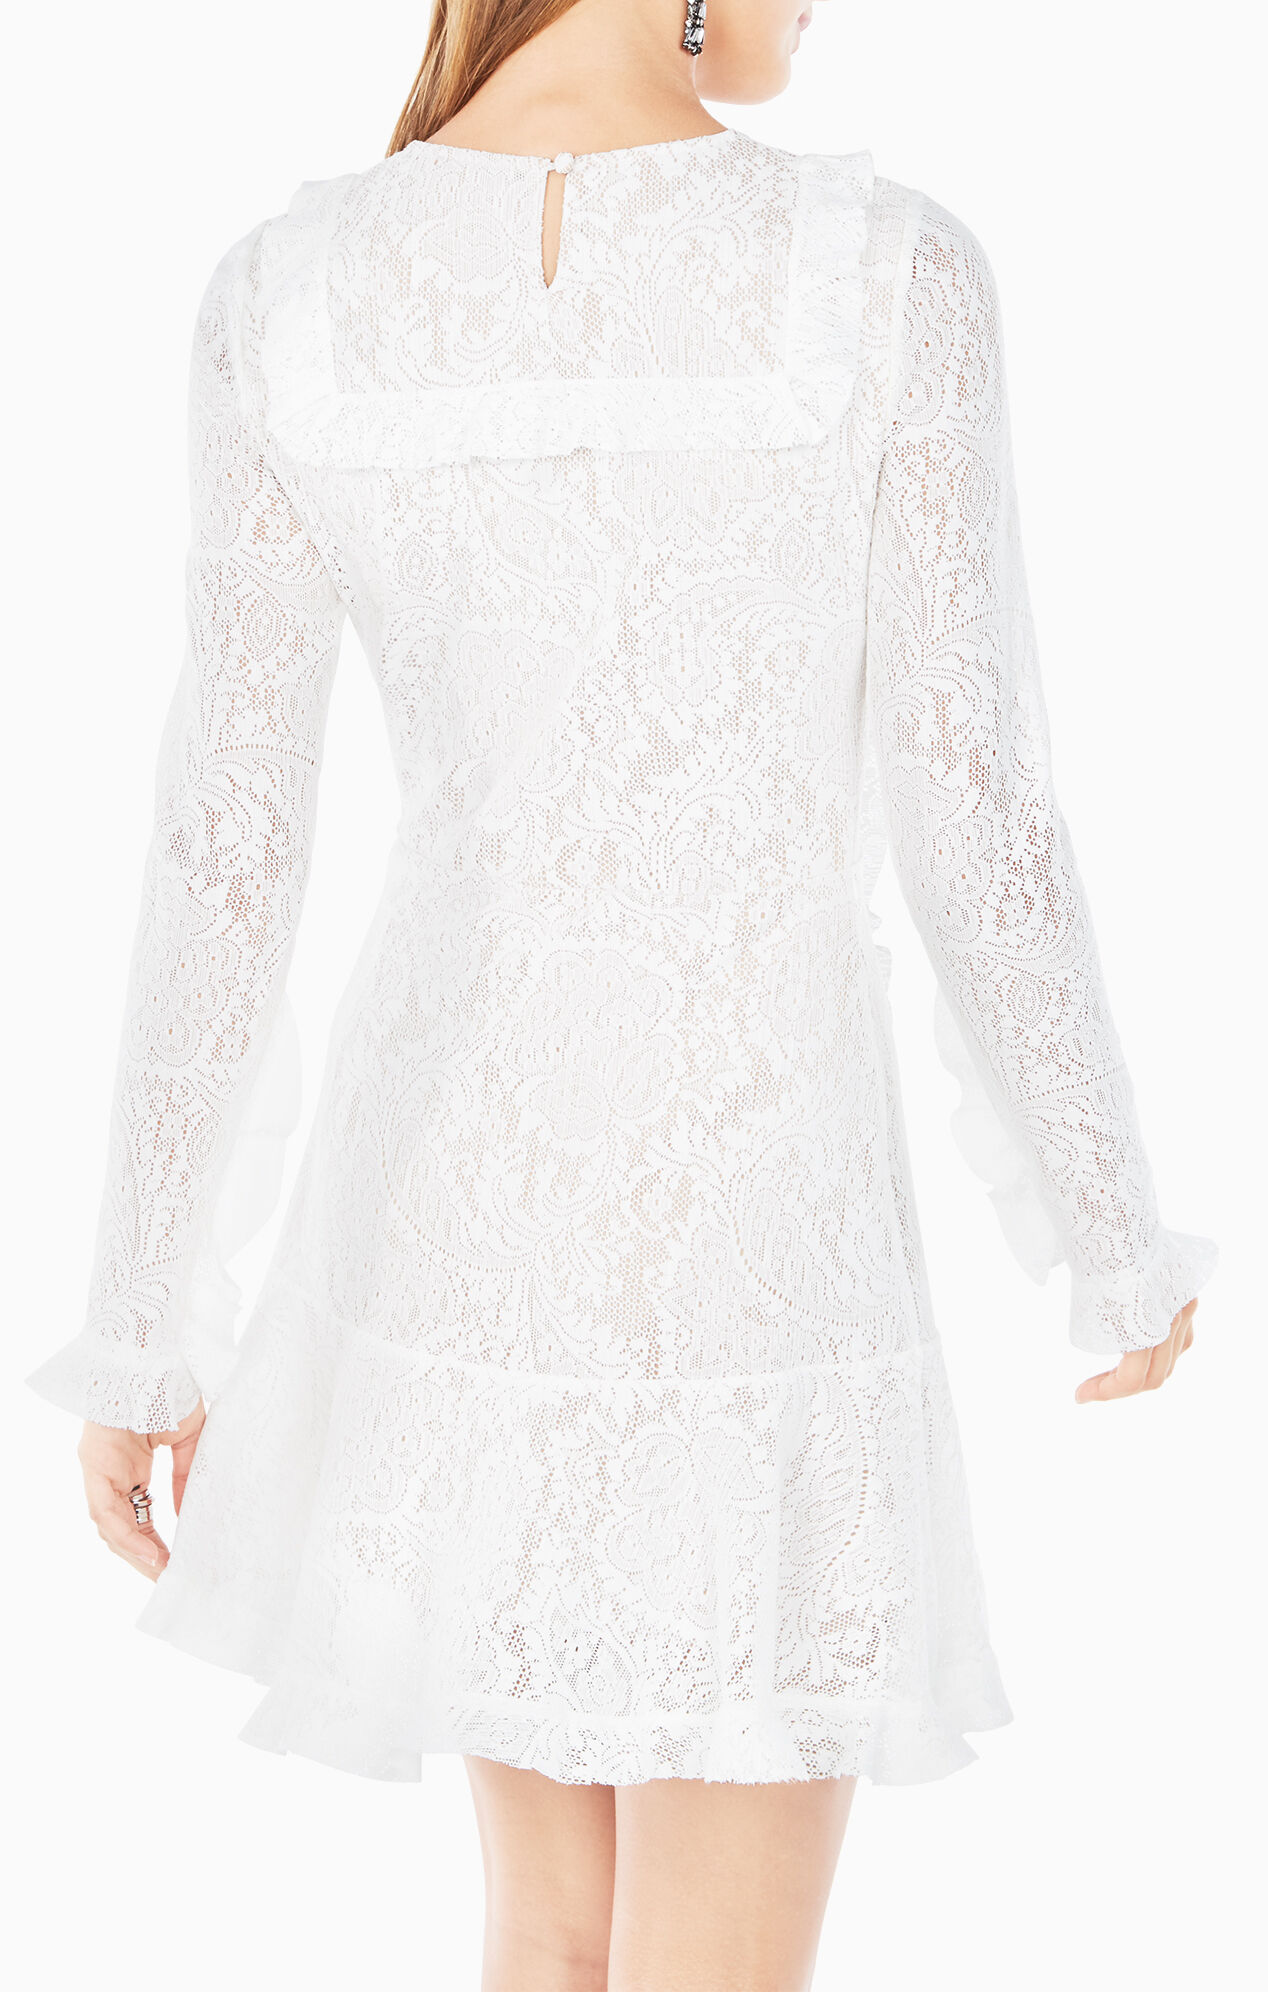 Guinevere Ruffled Lace Dress